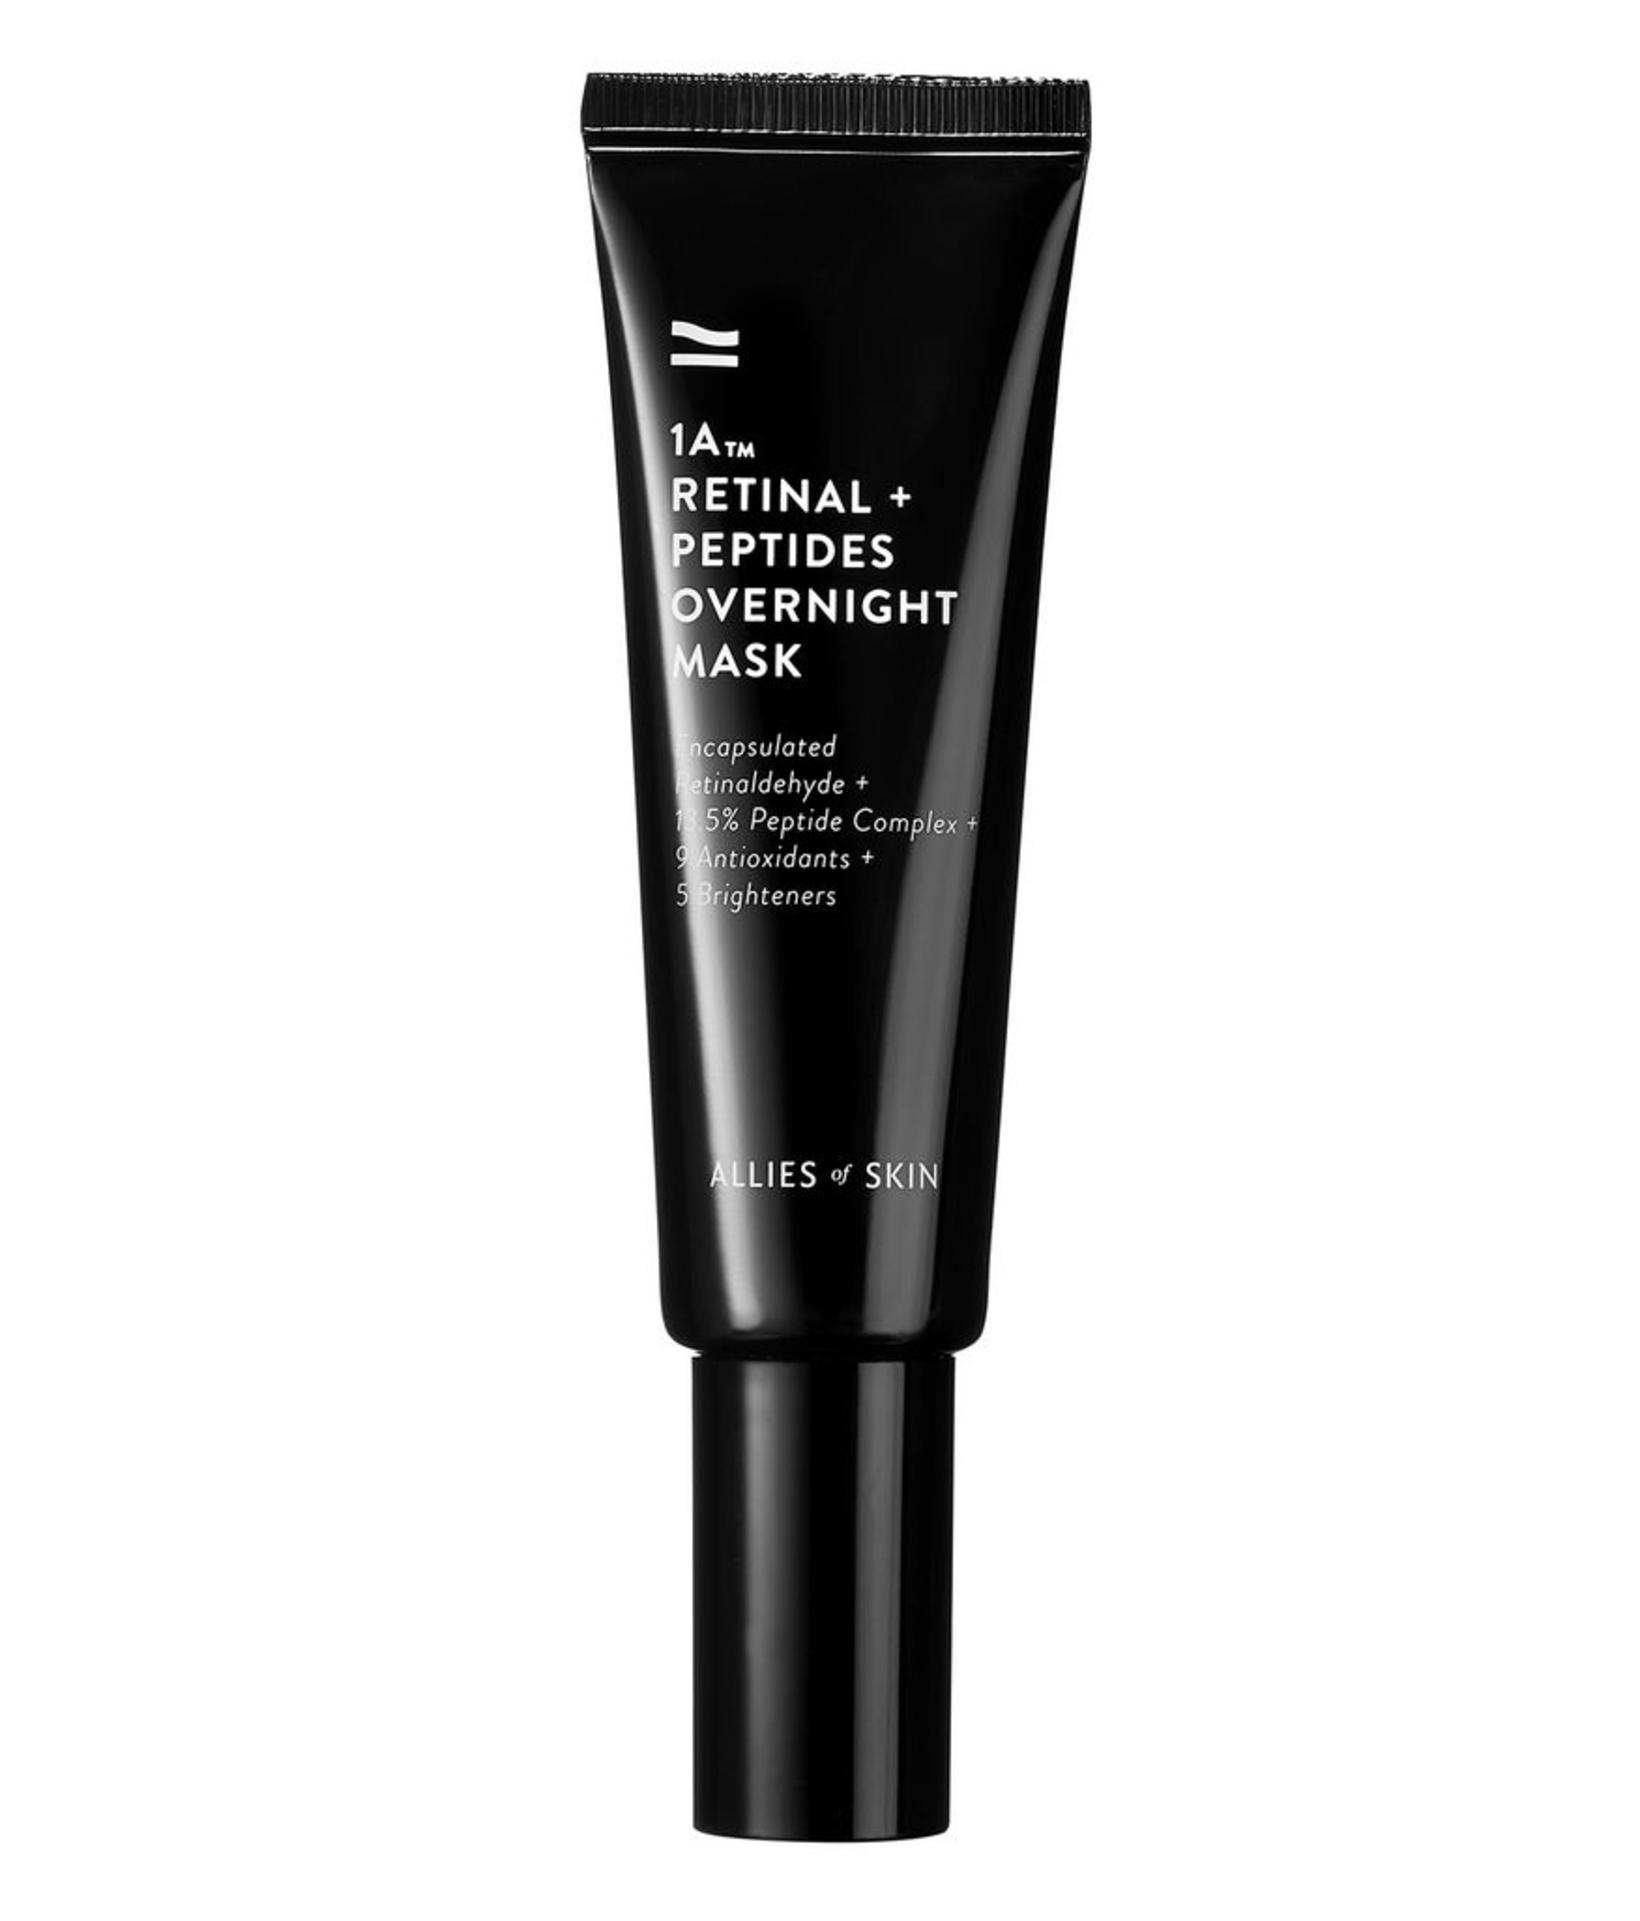 Allies Of Skin 1A Retinal+Peptides Overnight Mask, 19.990 kr.